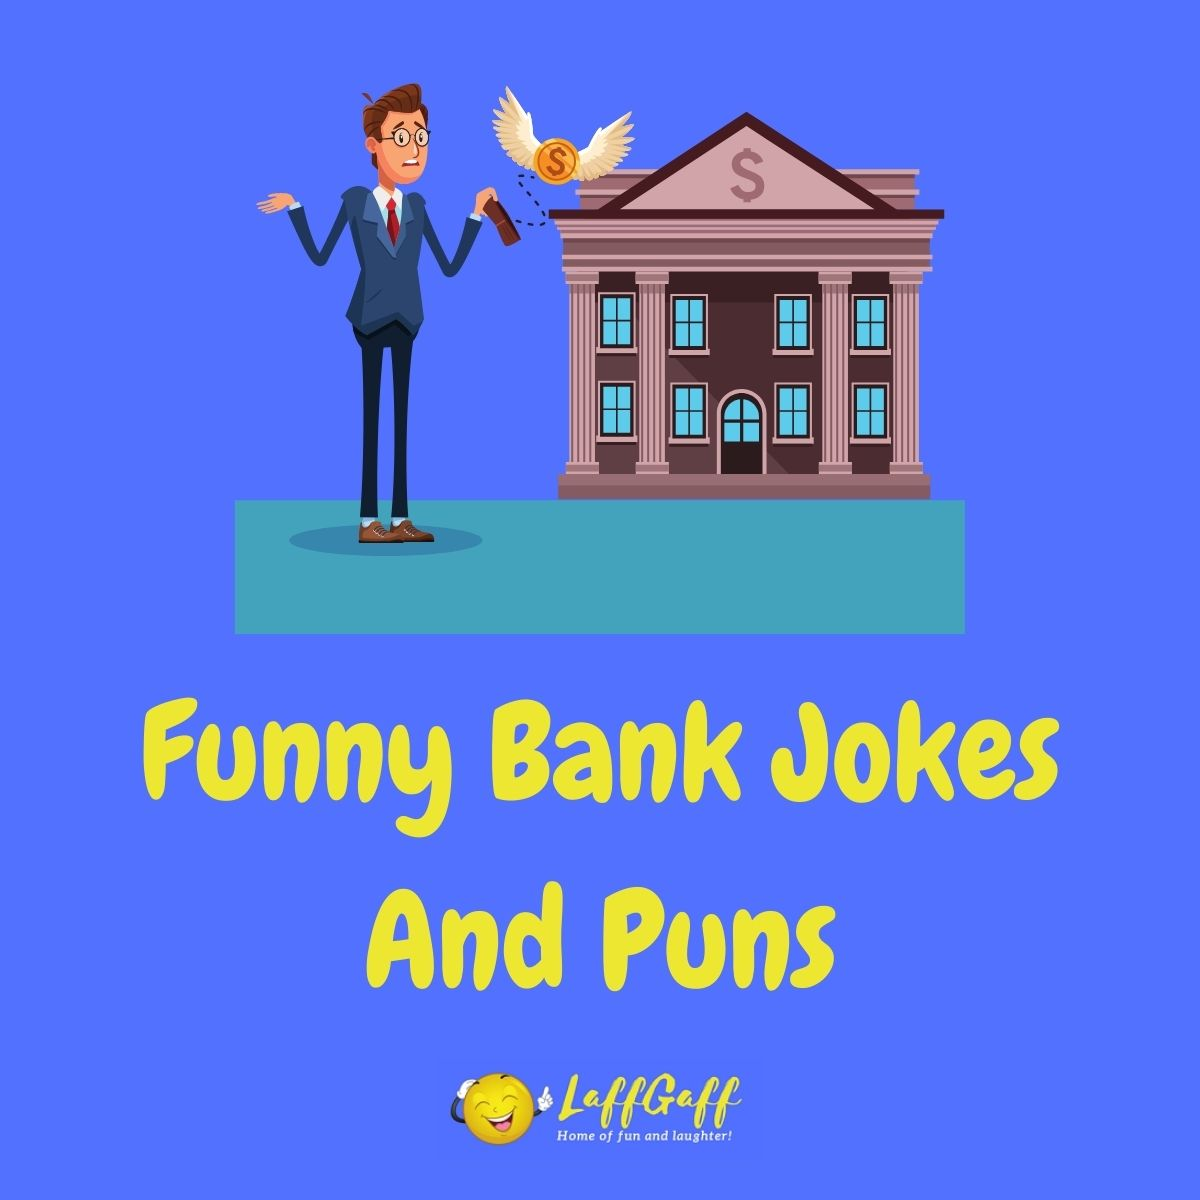 Featured image for a page of funny bank jokes and puns.